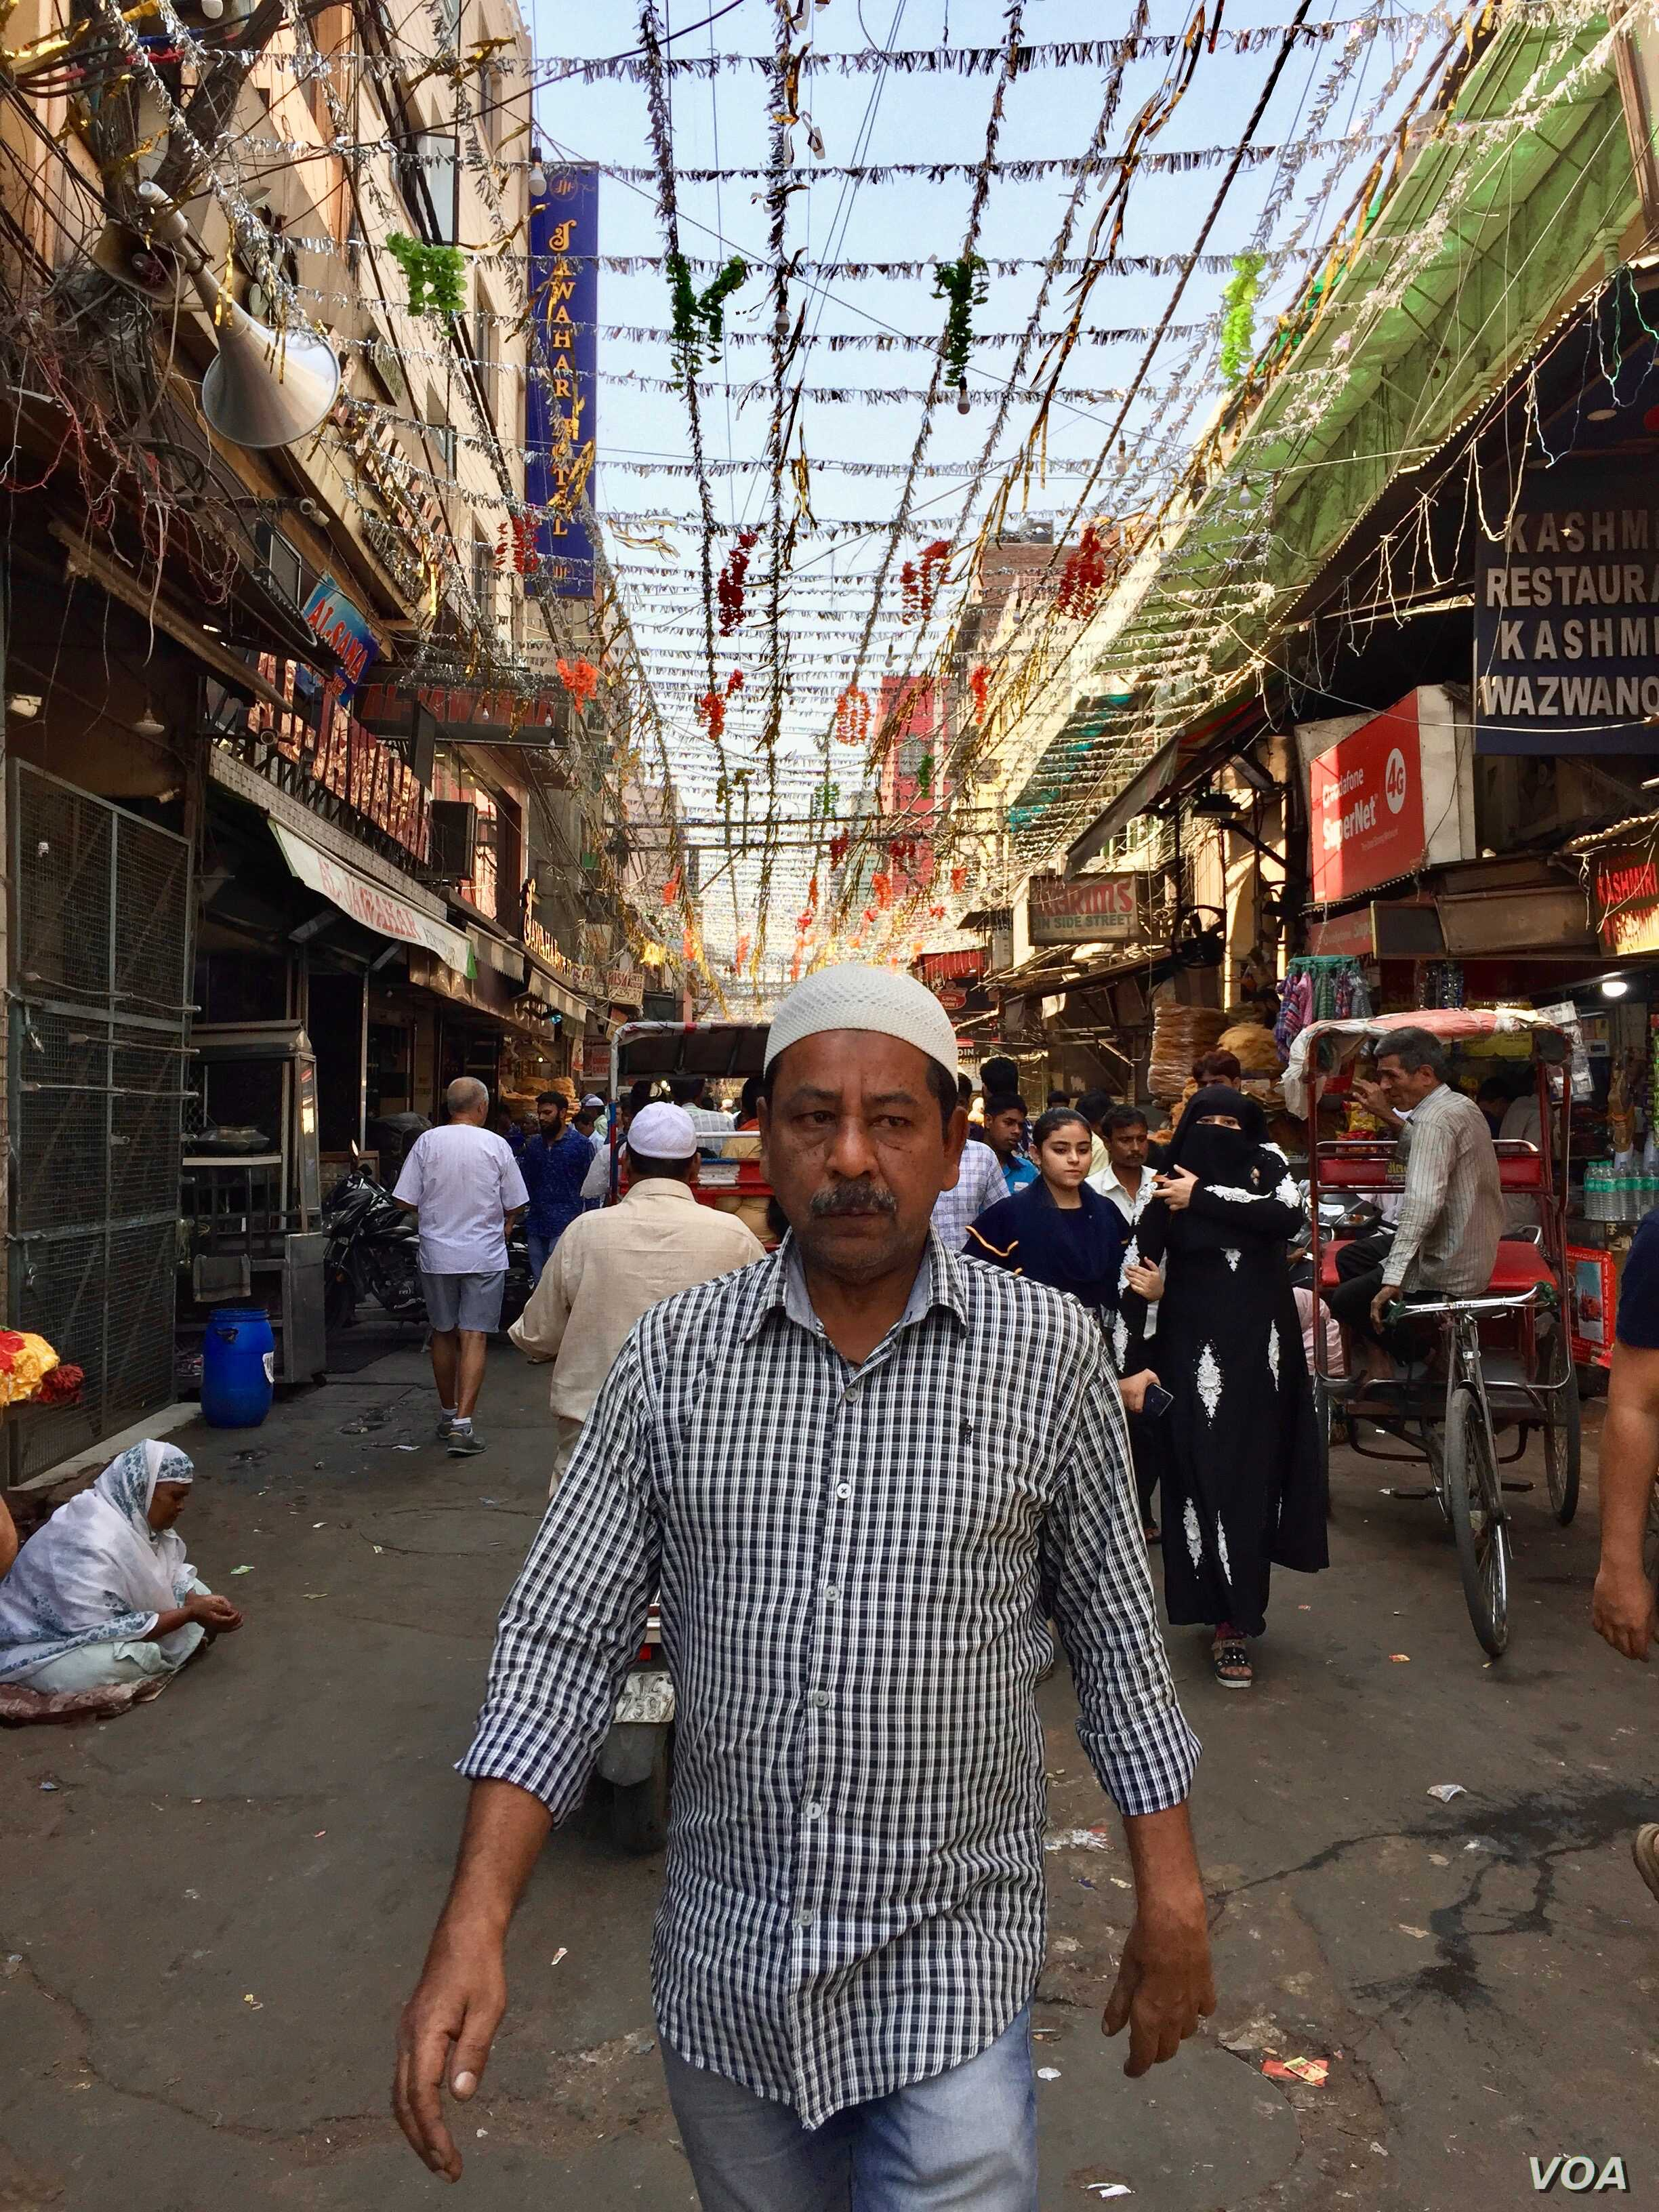 Streets outside the Jama Masjid area have been decorated for the holy month of Ramadan.